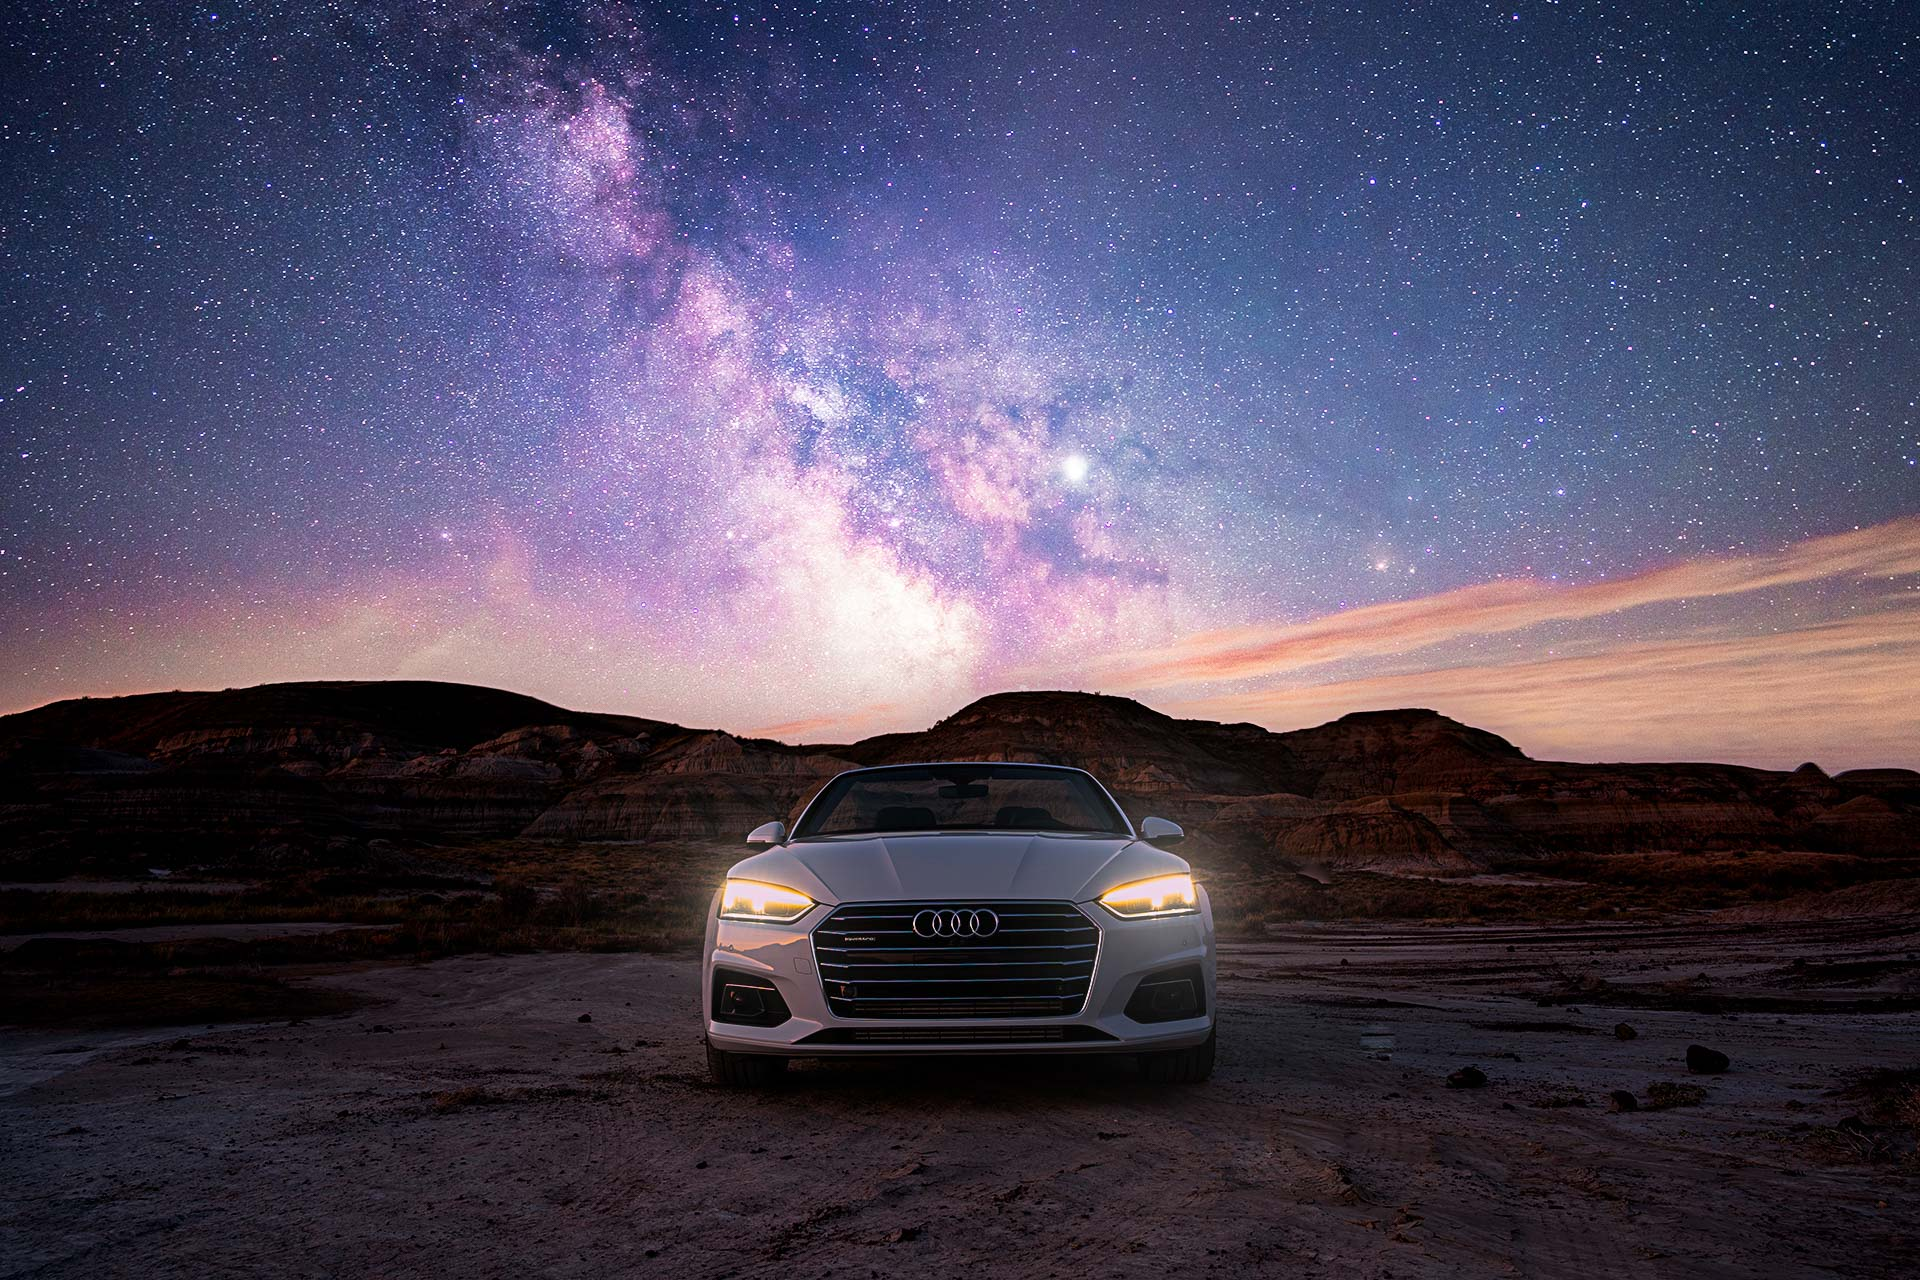 Audi A5 Milkyway Audi Canada Karl Lee Photography Automotive Photographer Alberta